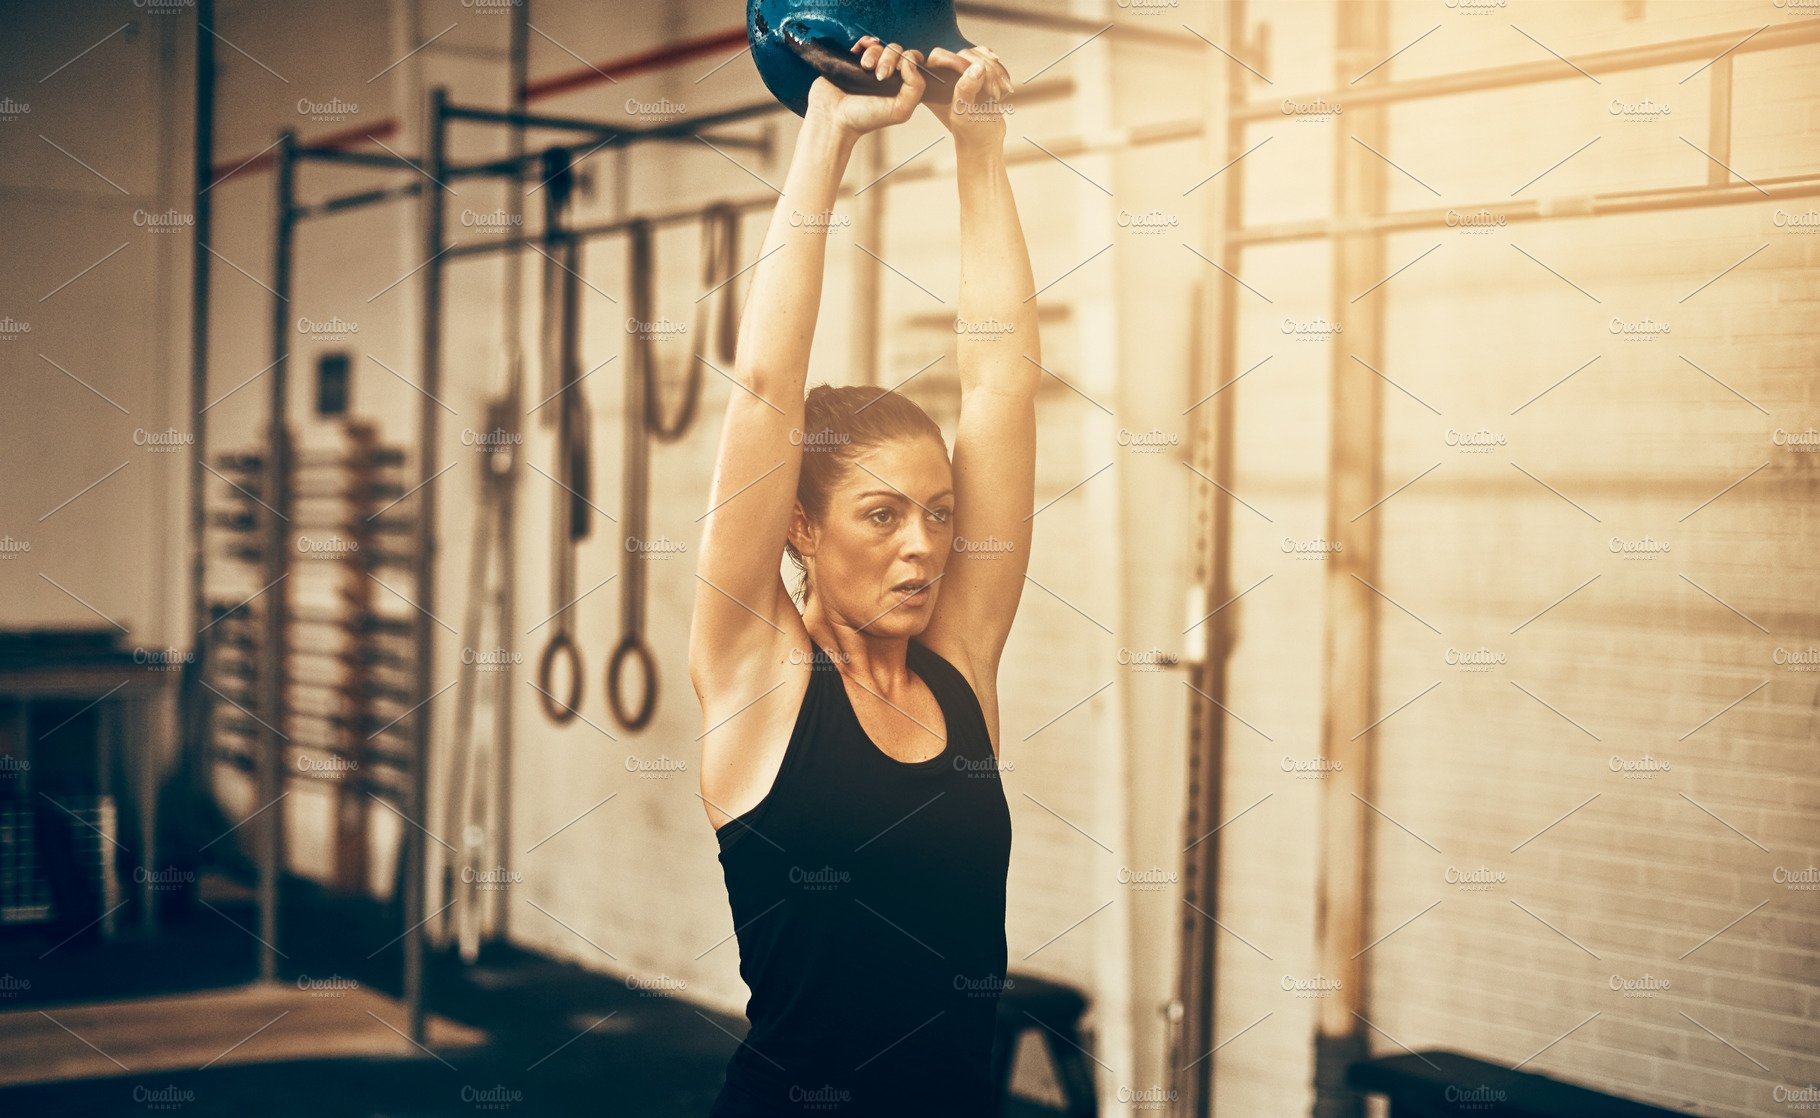 Focused young woman swinging a dumbbell at the gym ~ Sports Photos ~  Creative Market